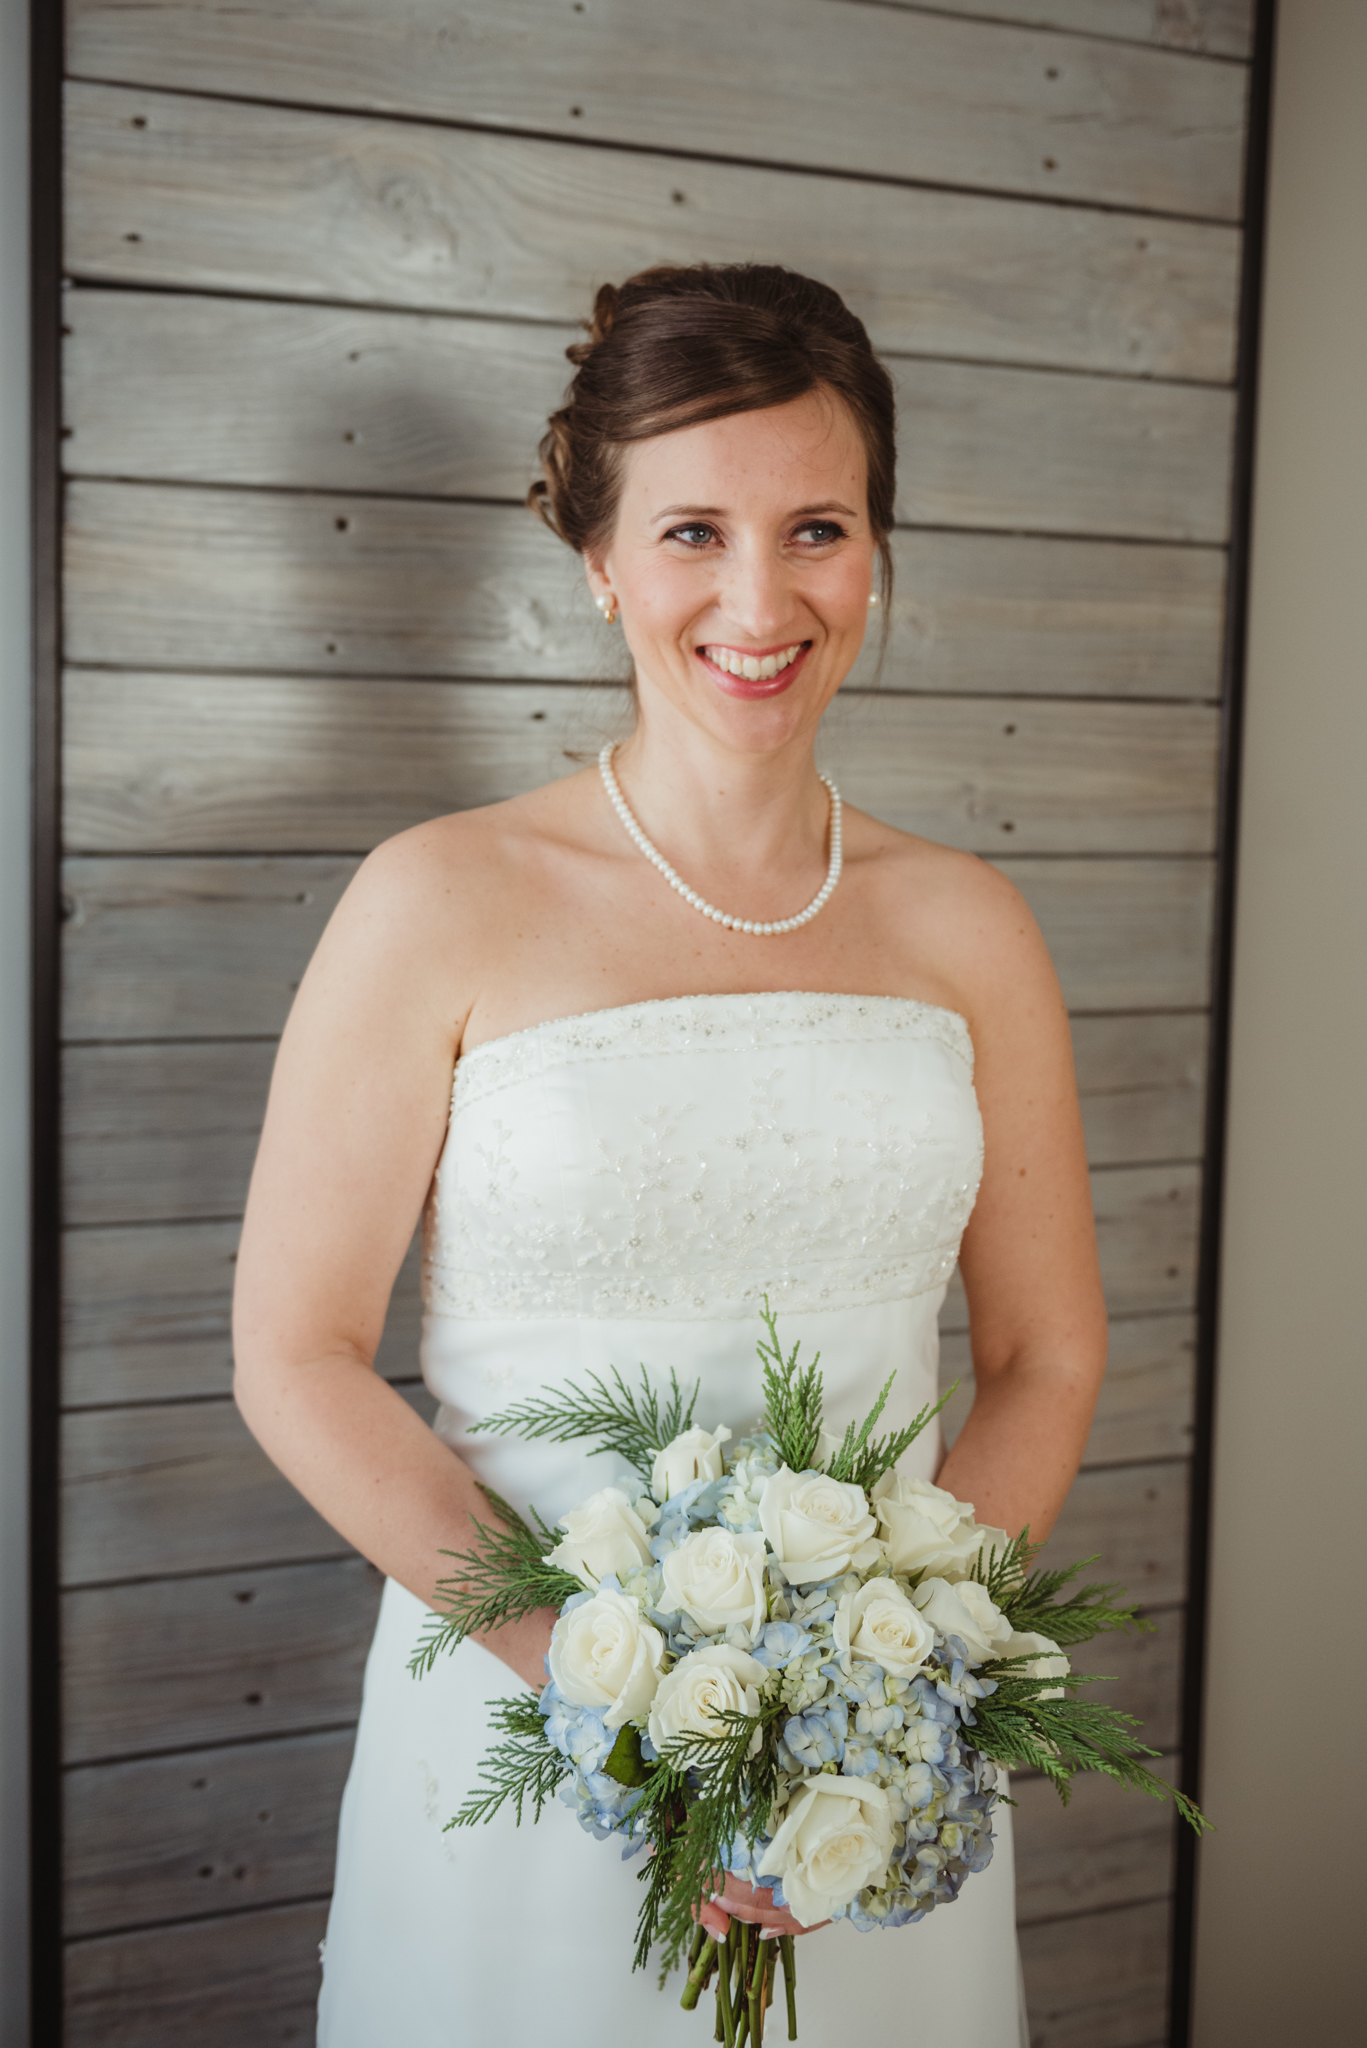 the-bride-getting-ready-at-her-home-in-Raleigh.jpg